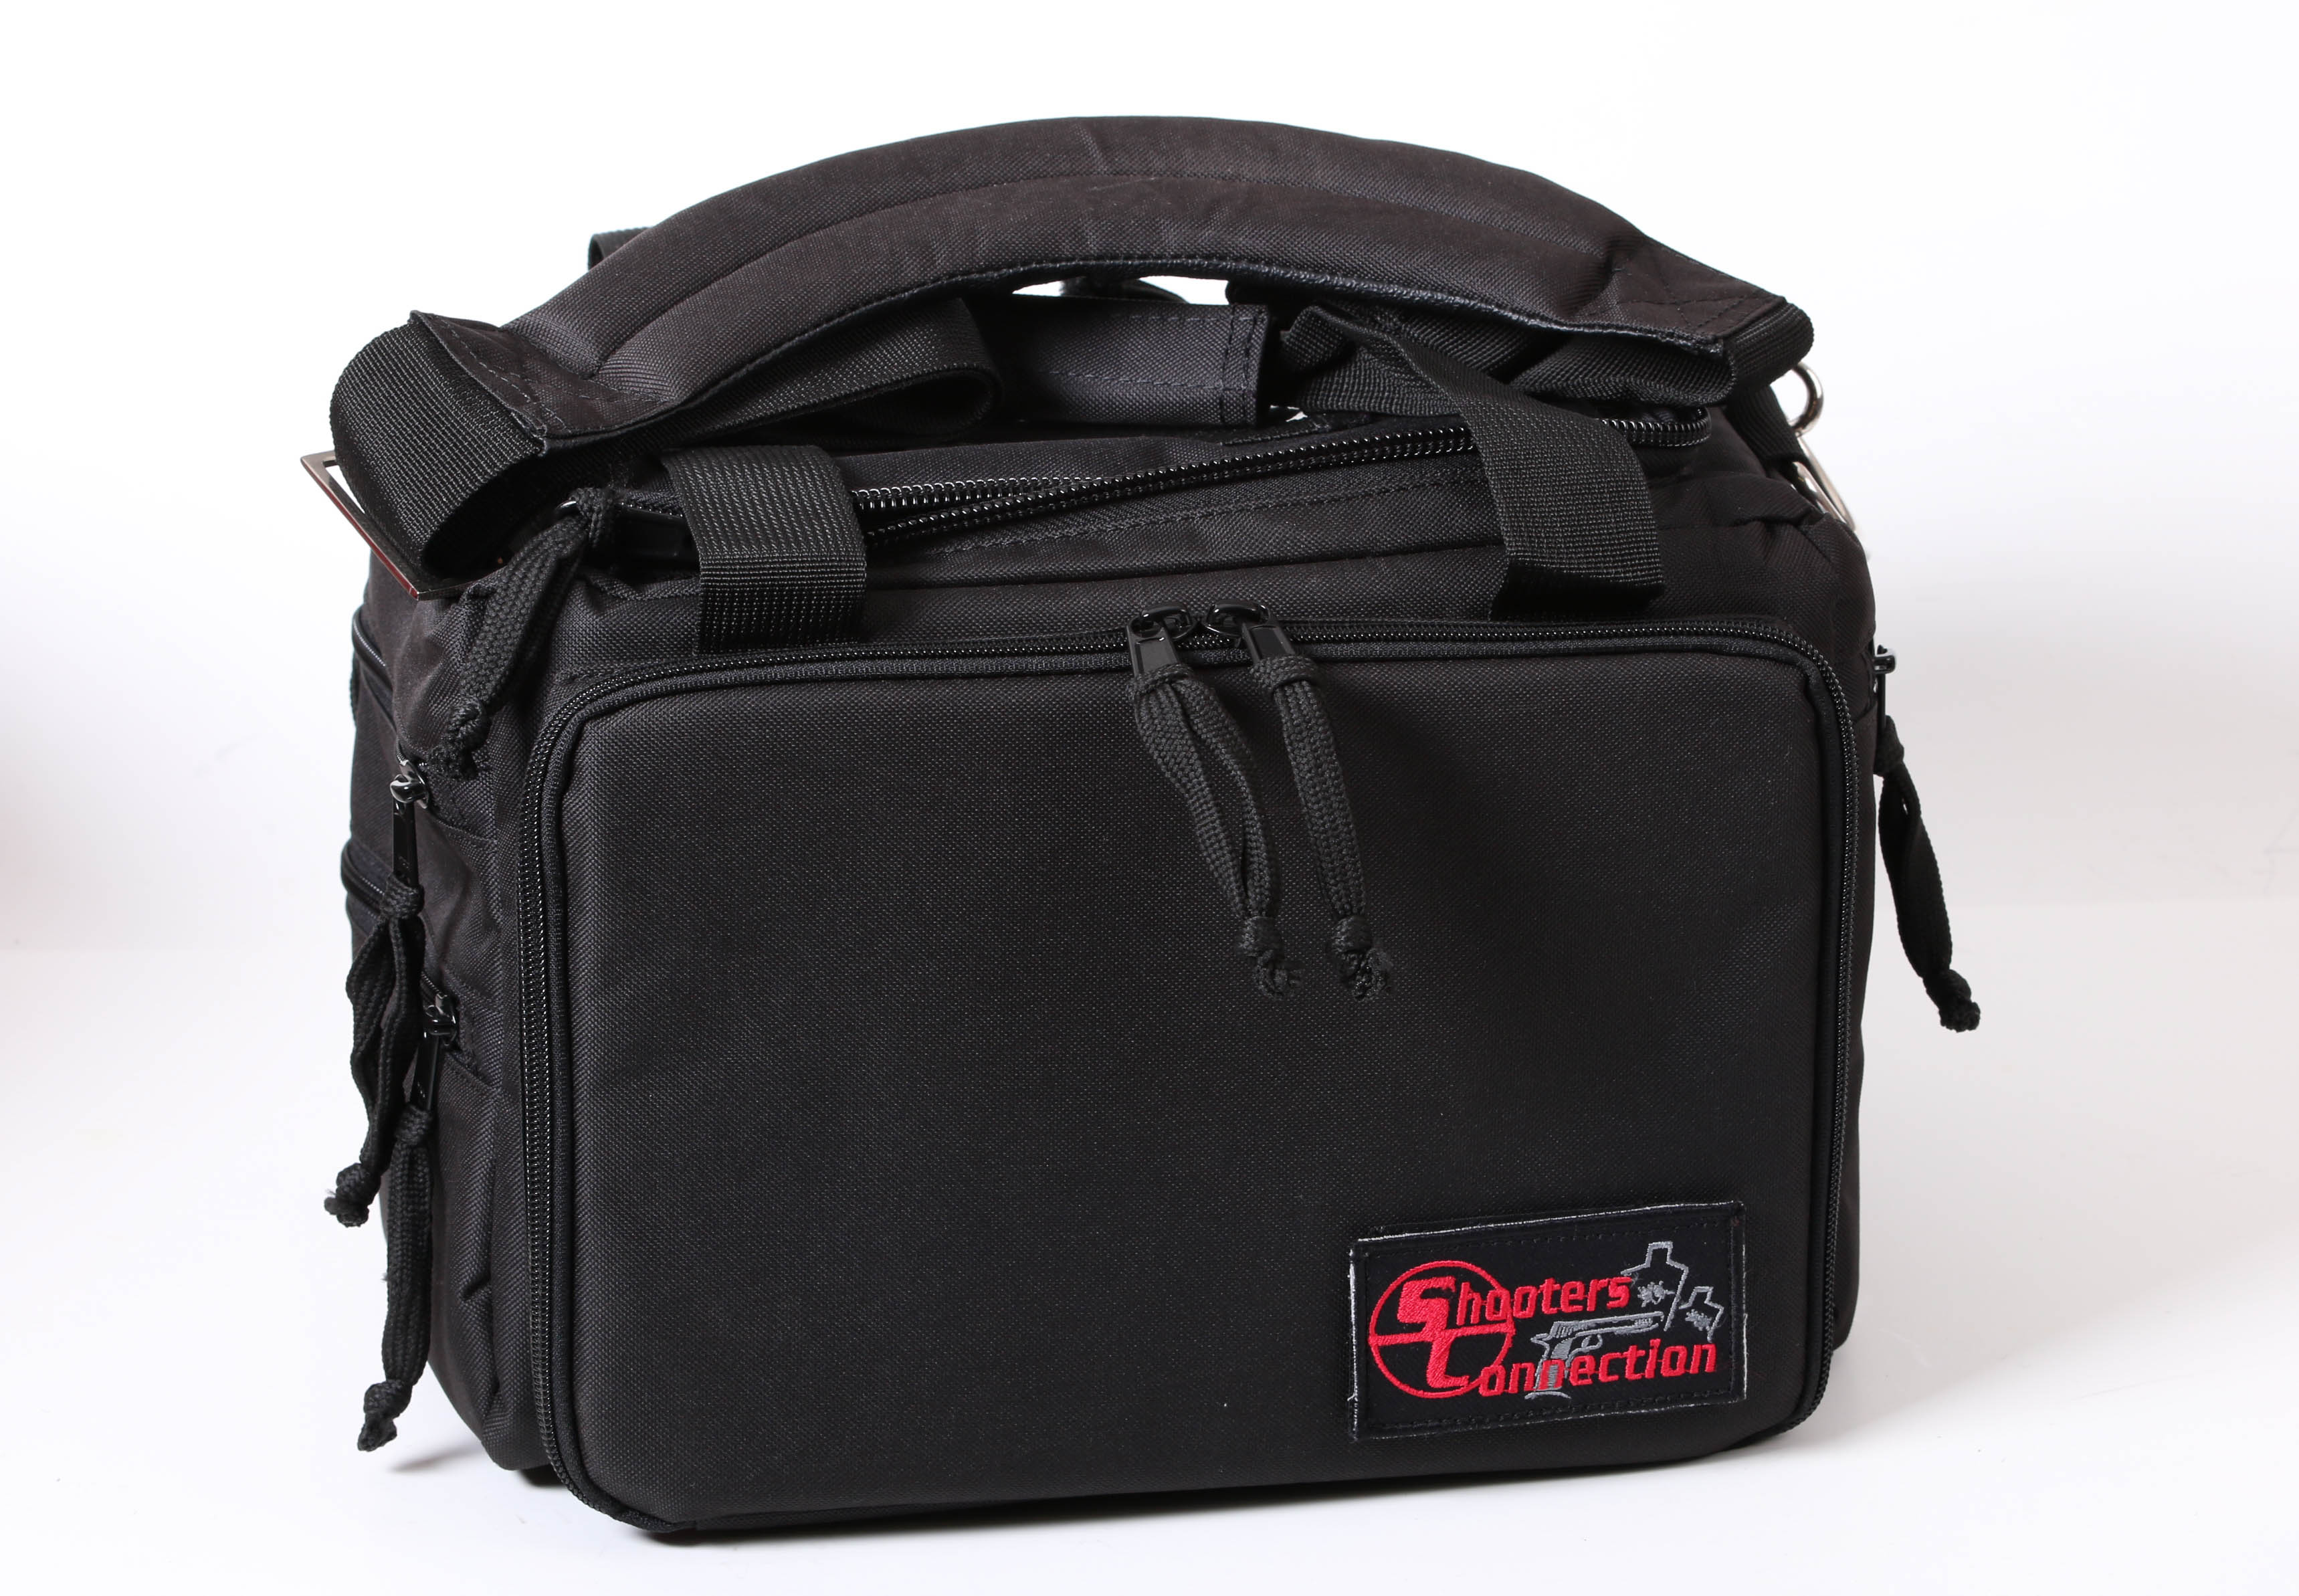 Shooters Connection Tournament Series Shooting Bag PRO Compact